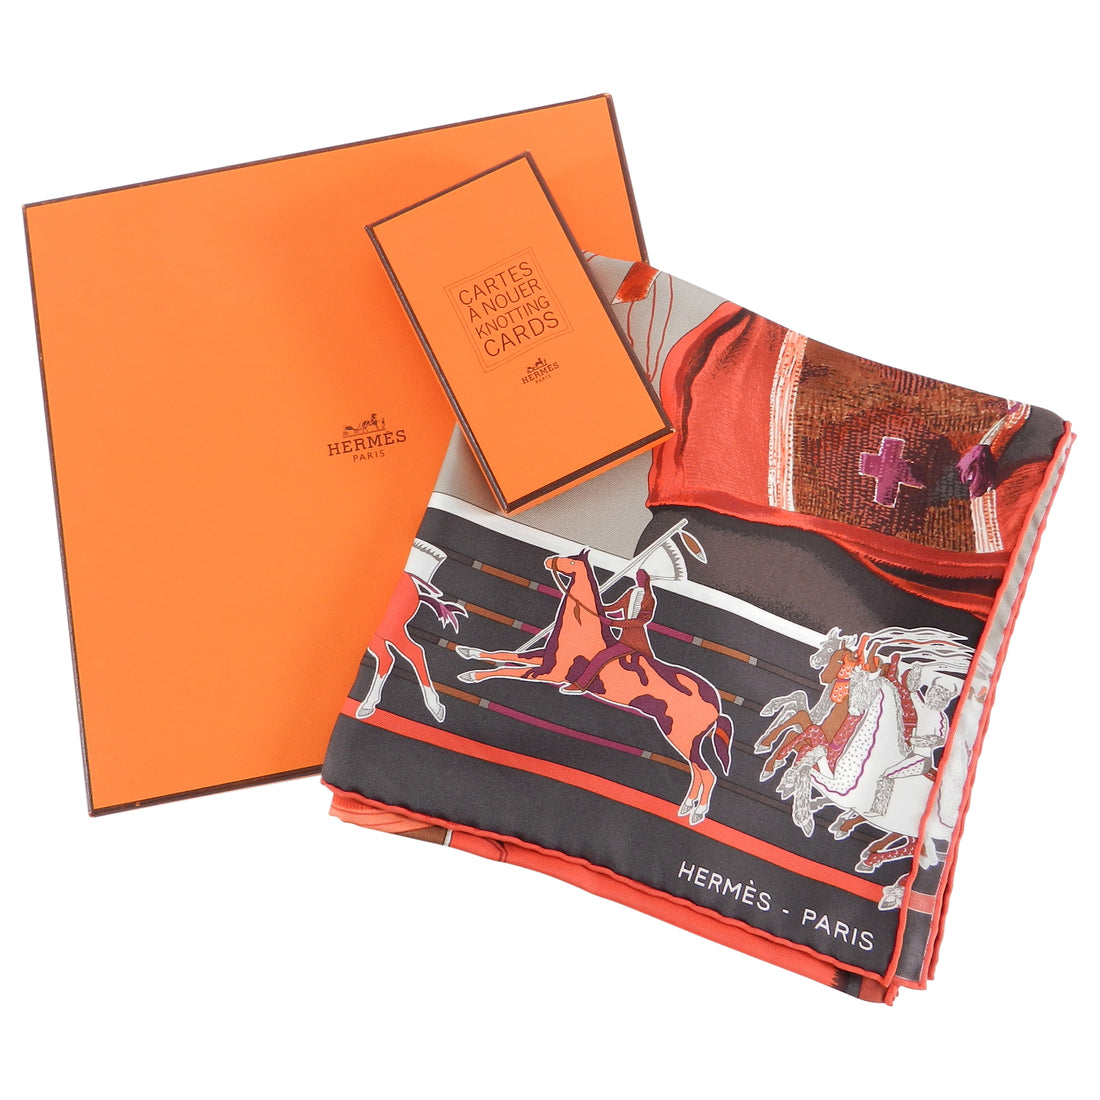 Hermes Carre en Carres 90cm Silk Twill Scarf and Knotting Cards